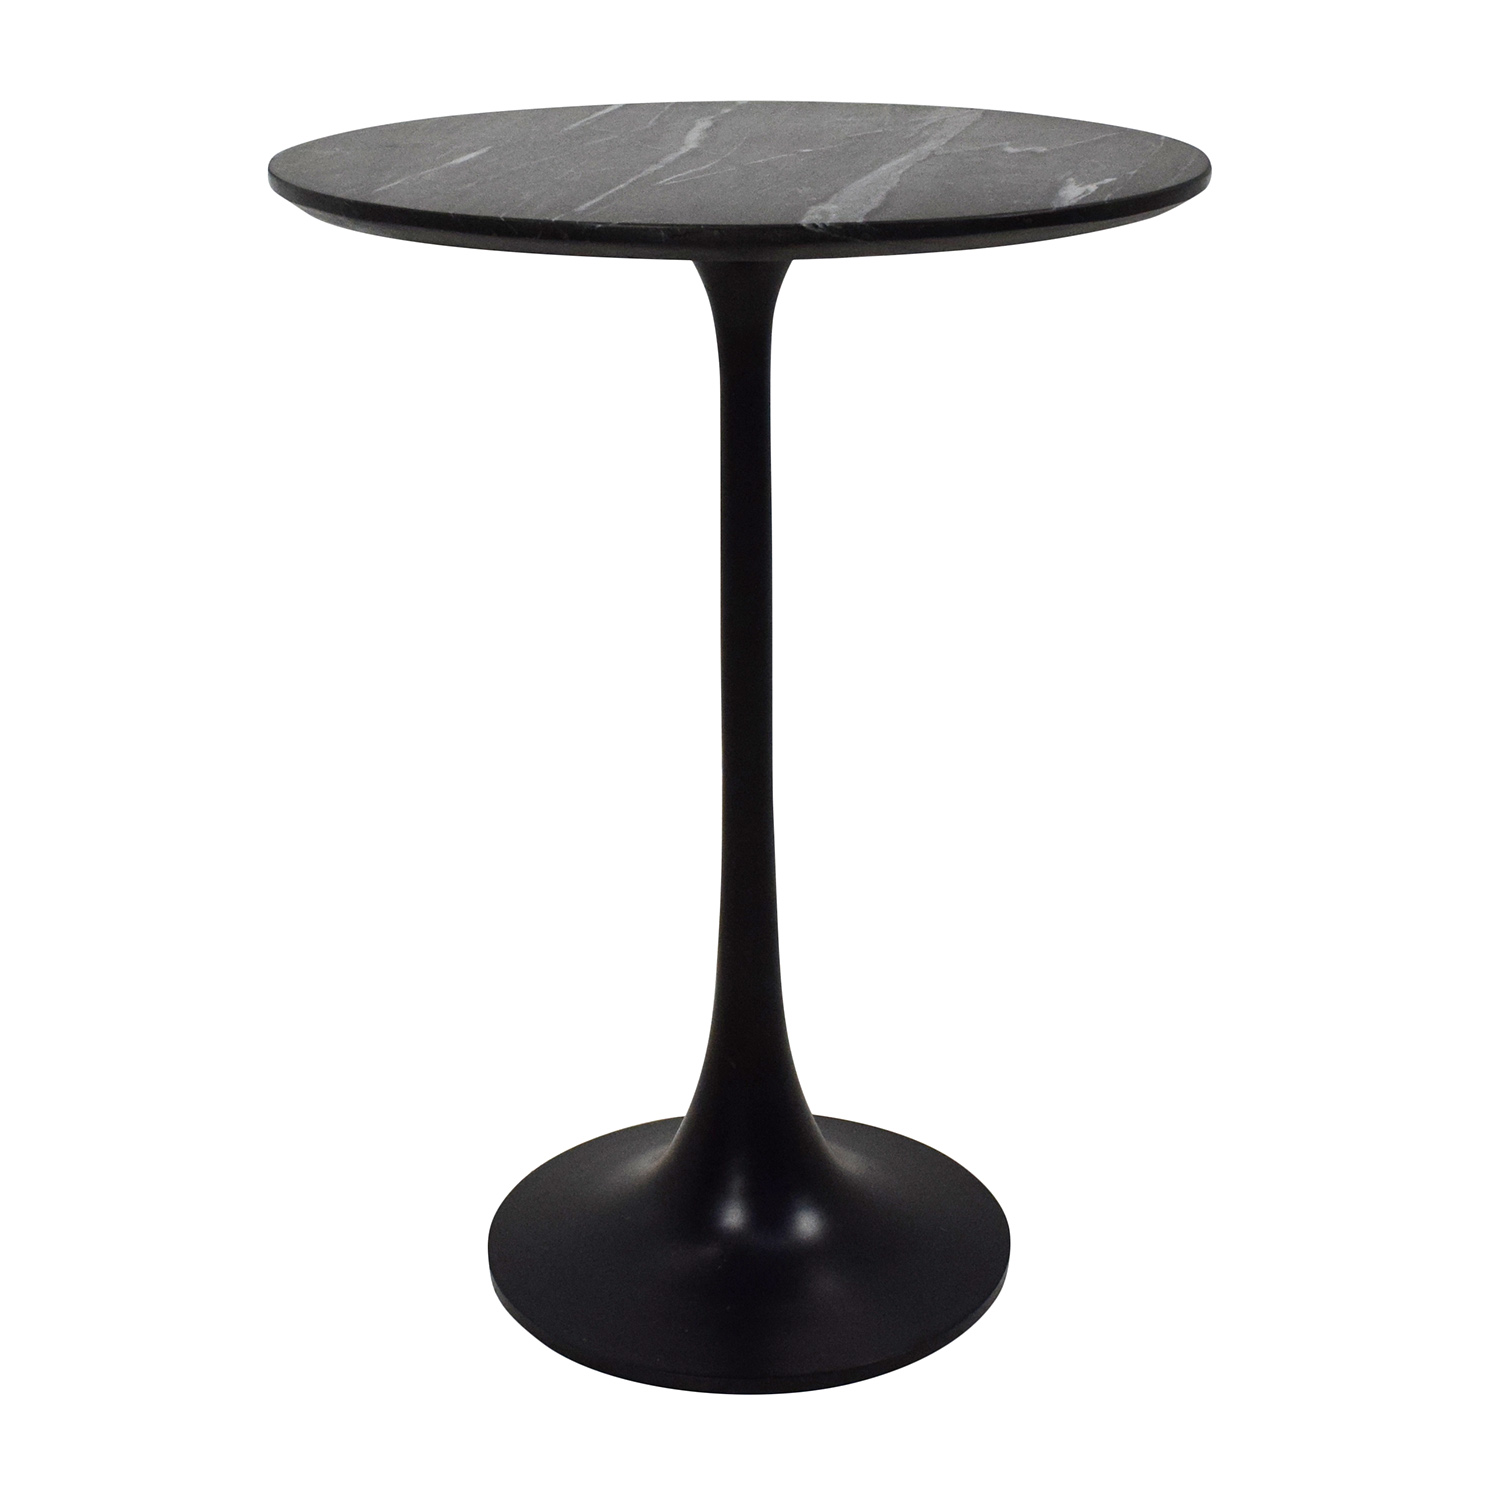 Crate And Barrel Black Marble Coffee Table: Crate And Barrel Crate & Barrel Marble Sidetable